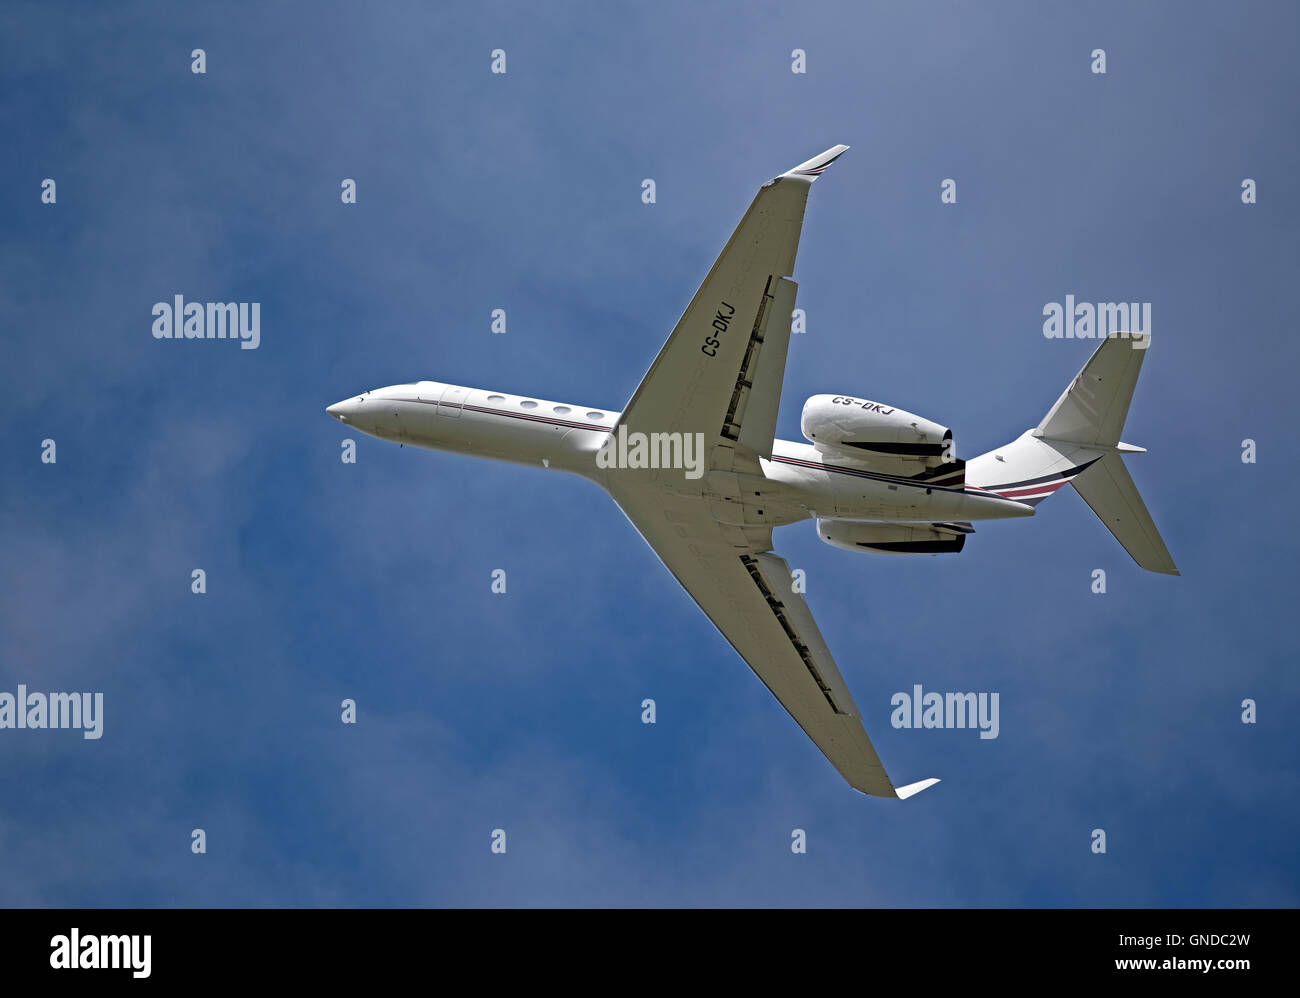 A Gulfstream G550 departs Inverness airfield in Scotland UK.  SCO 11,216. Stock Photo